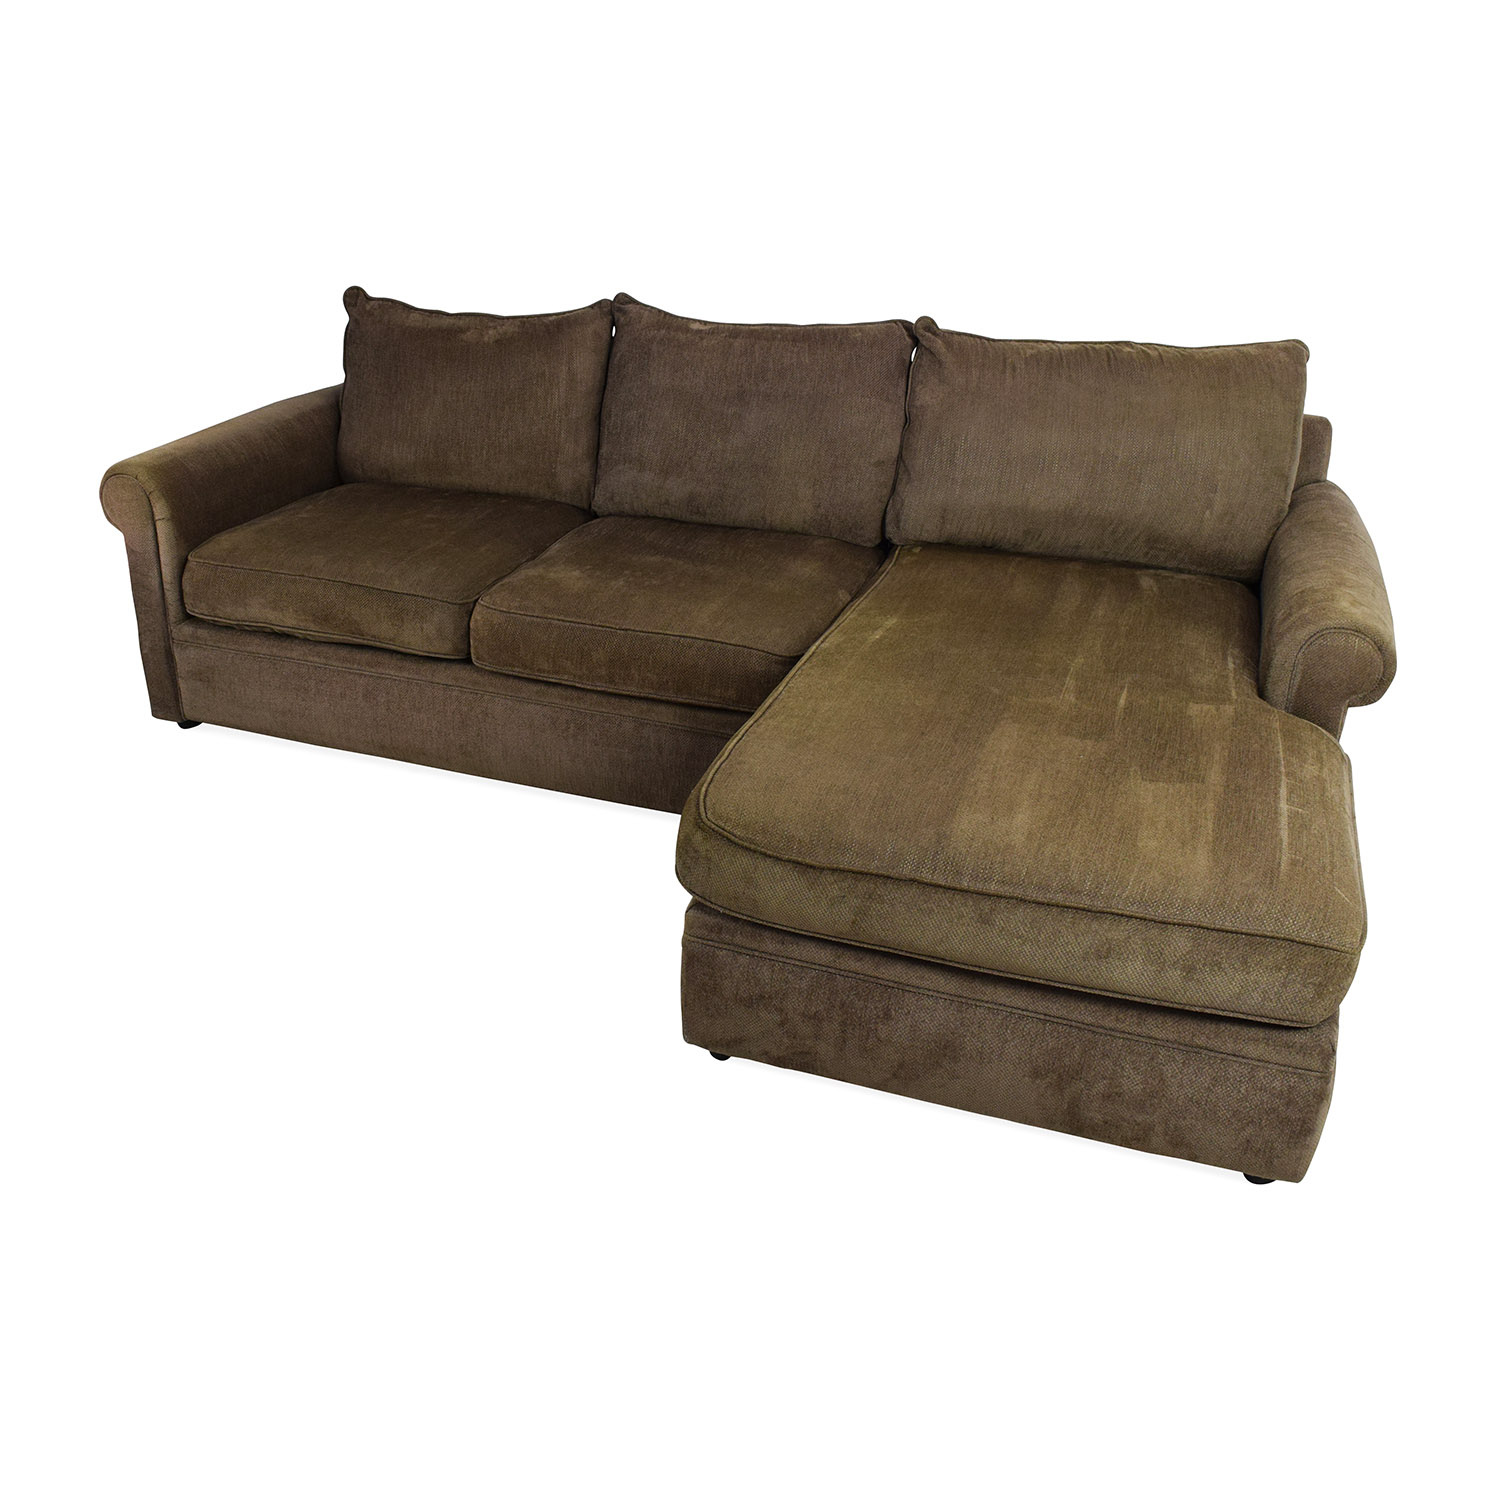 83 Off Bloomingdales Bloomingdale S Sectional Sofas